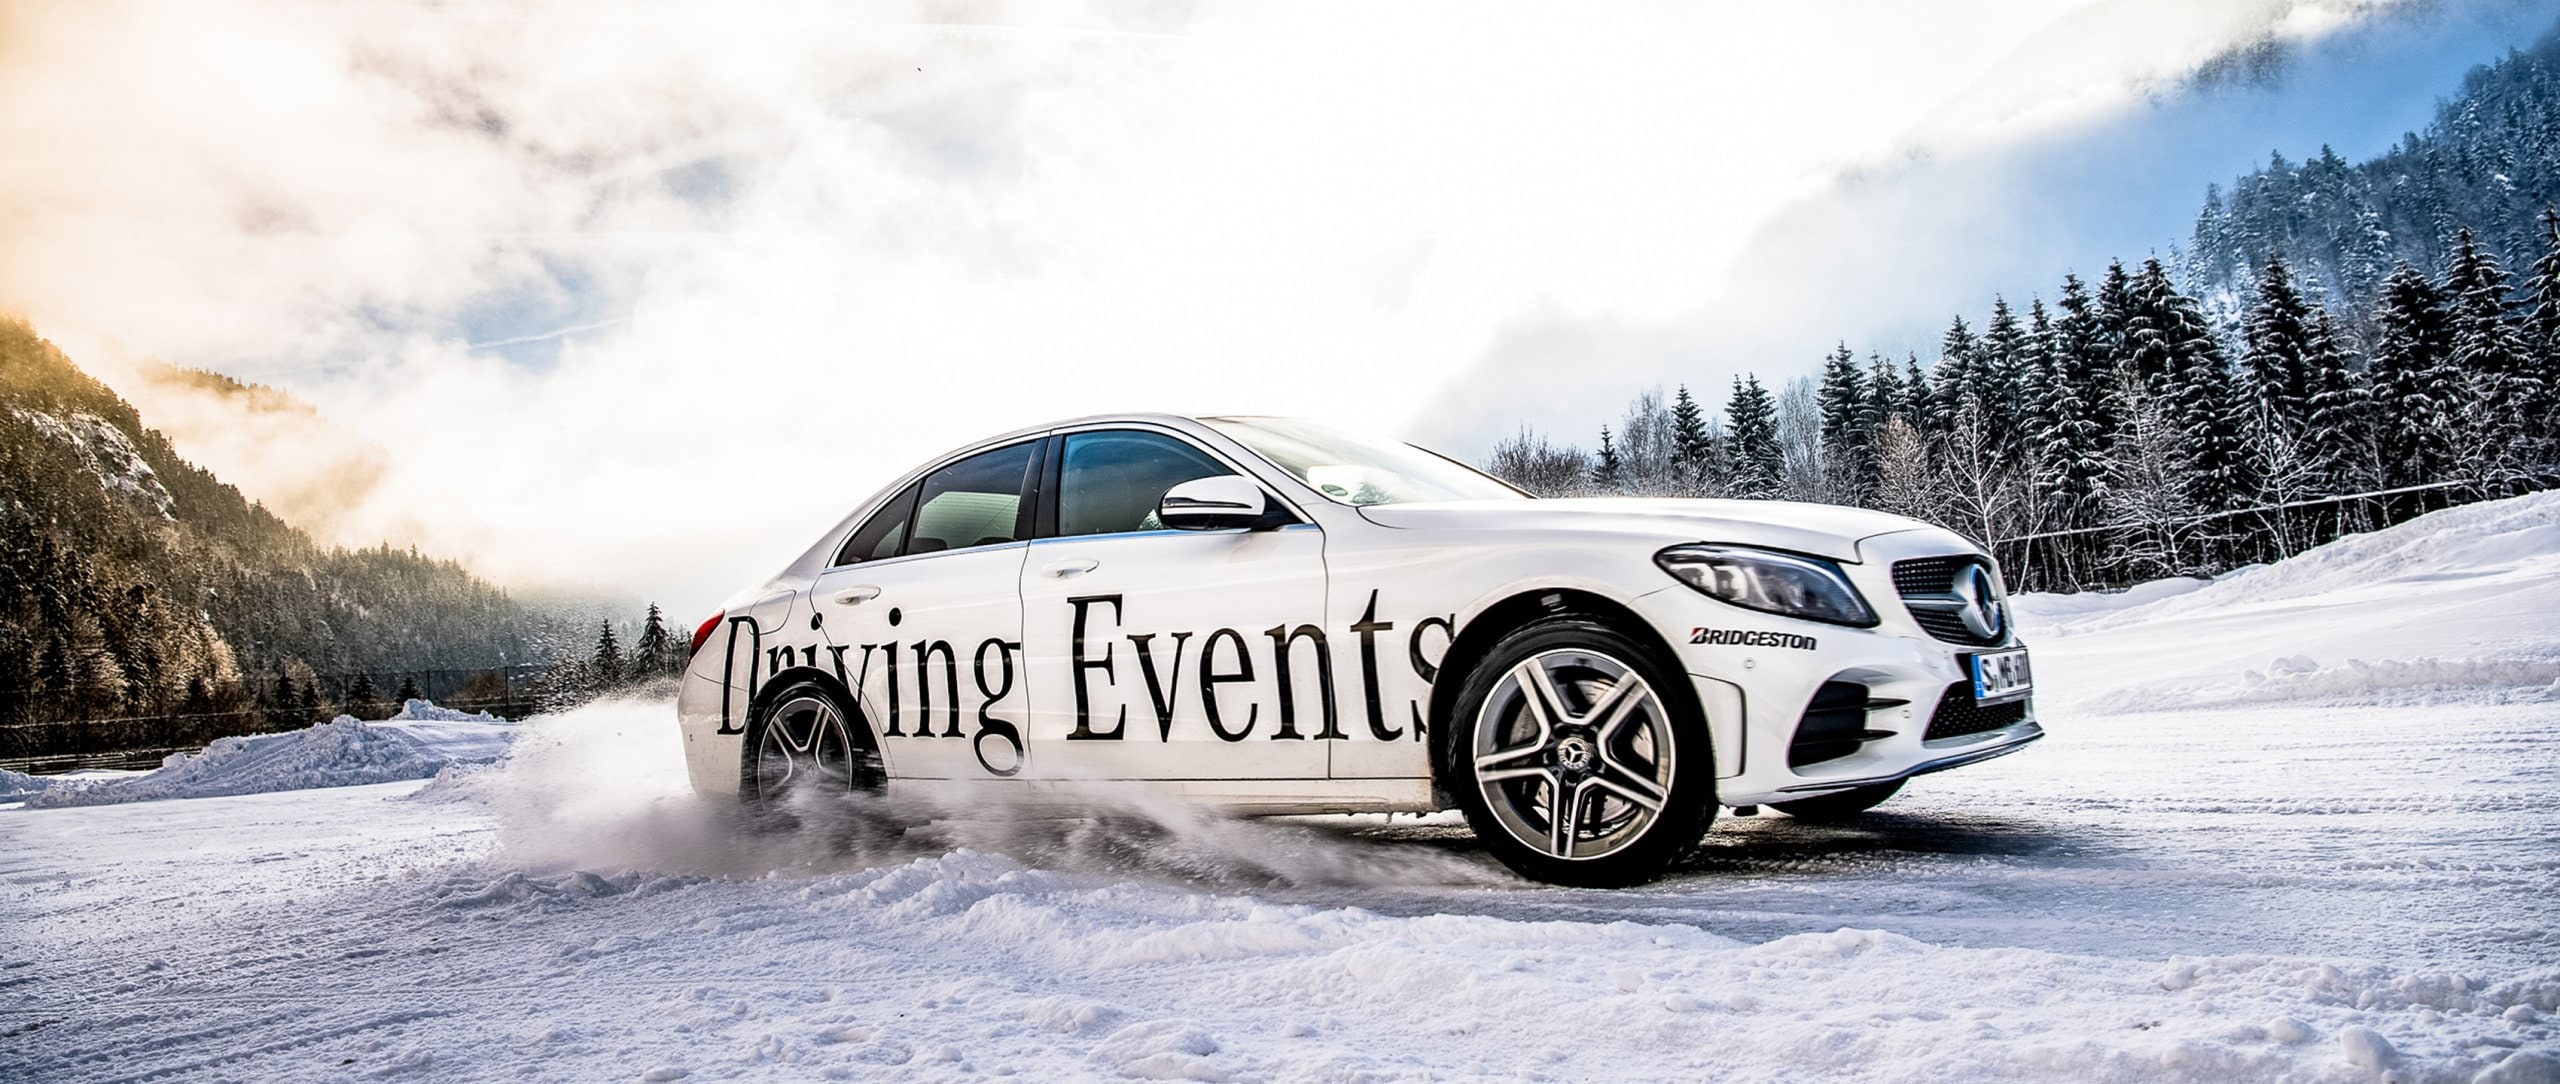 A vehicle is drifting in the snow at a Mercedes-Benz Driving Event.